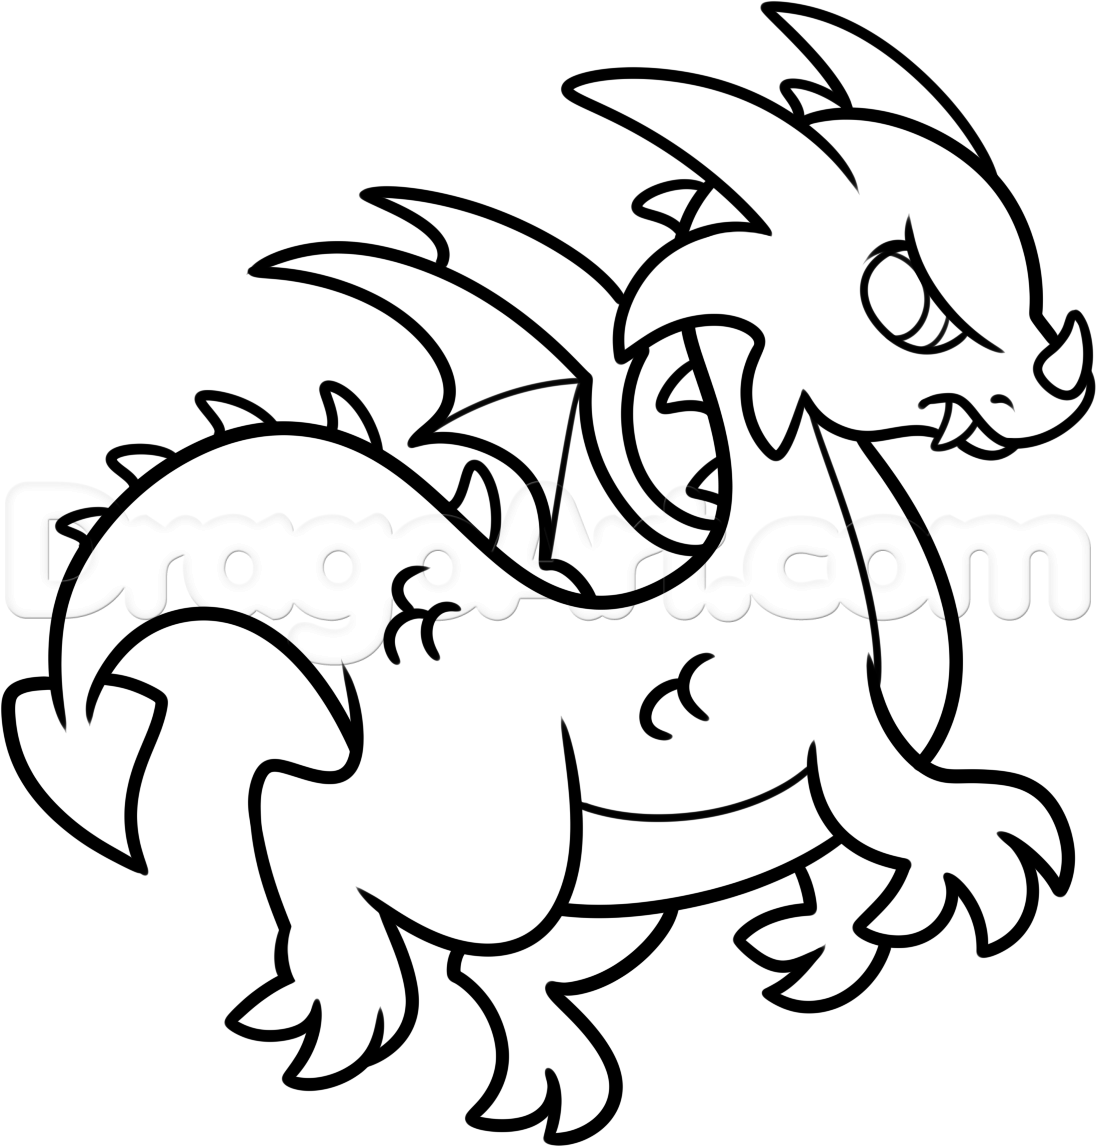 how to draw a simple dragon step 8 | Dragons | Pinterest ...